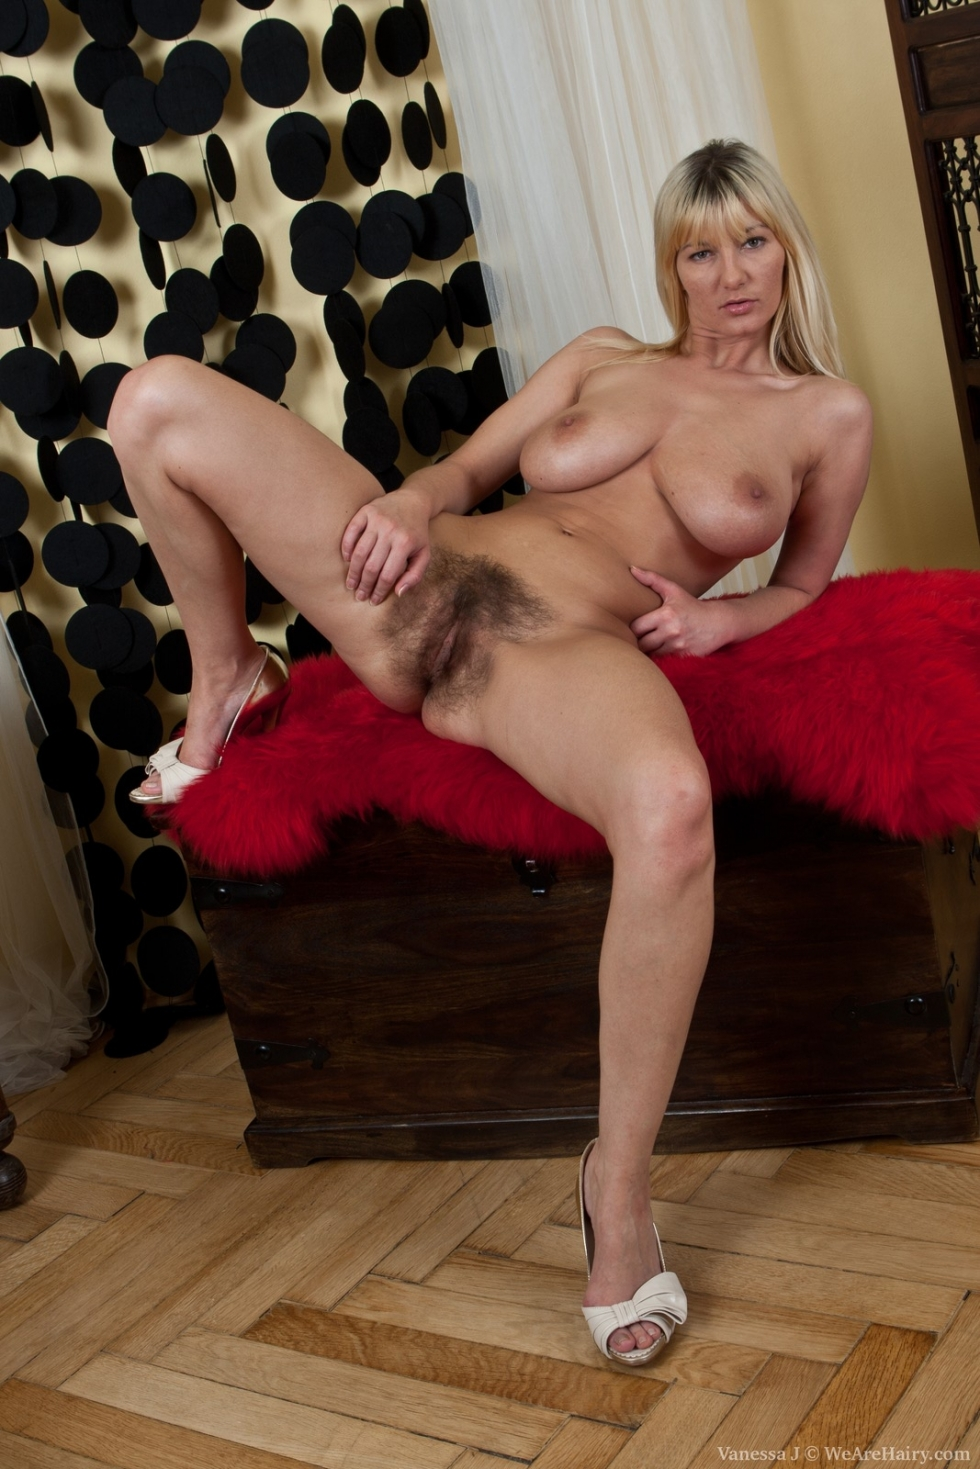 Miss alis and miss moni ica - 2 part 5